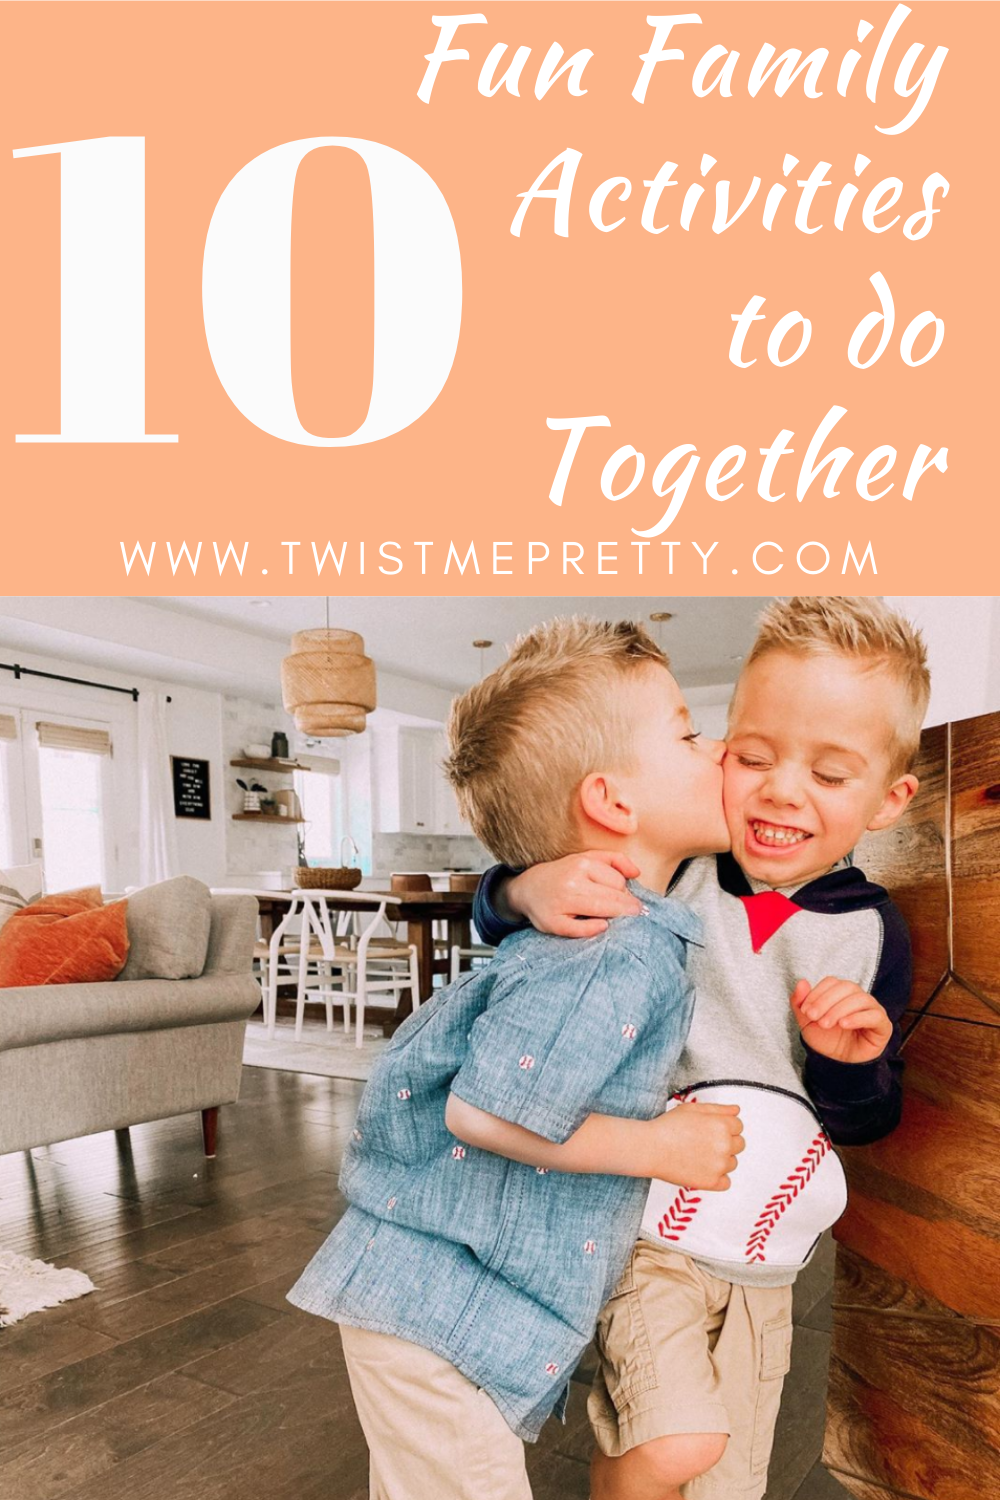 10 Fun Family Activities to do together. www.twistmepretty.com